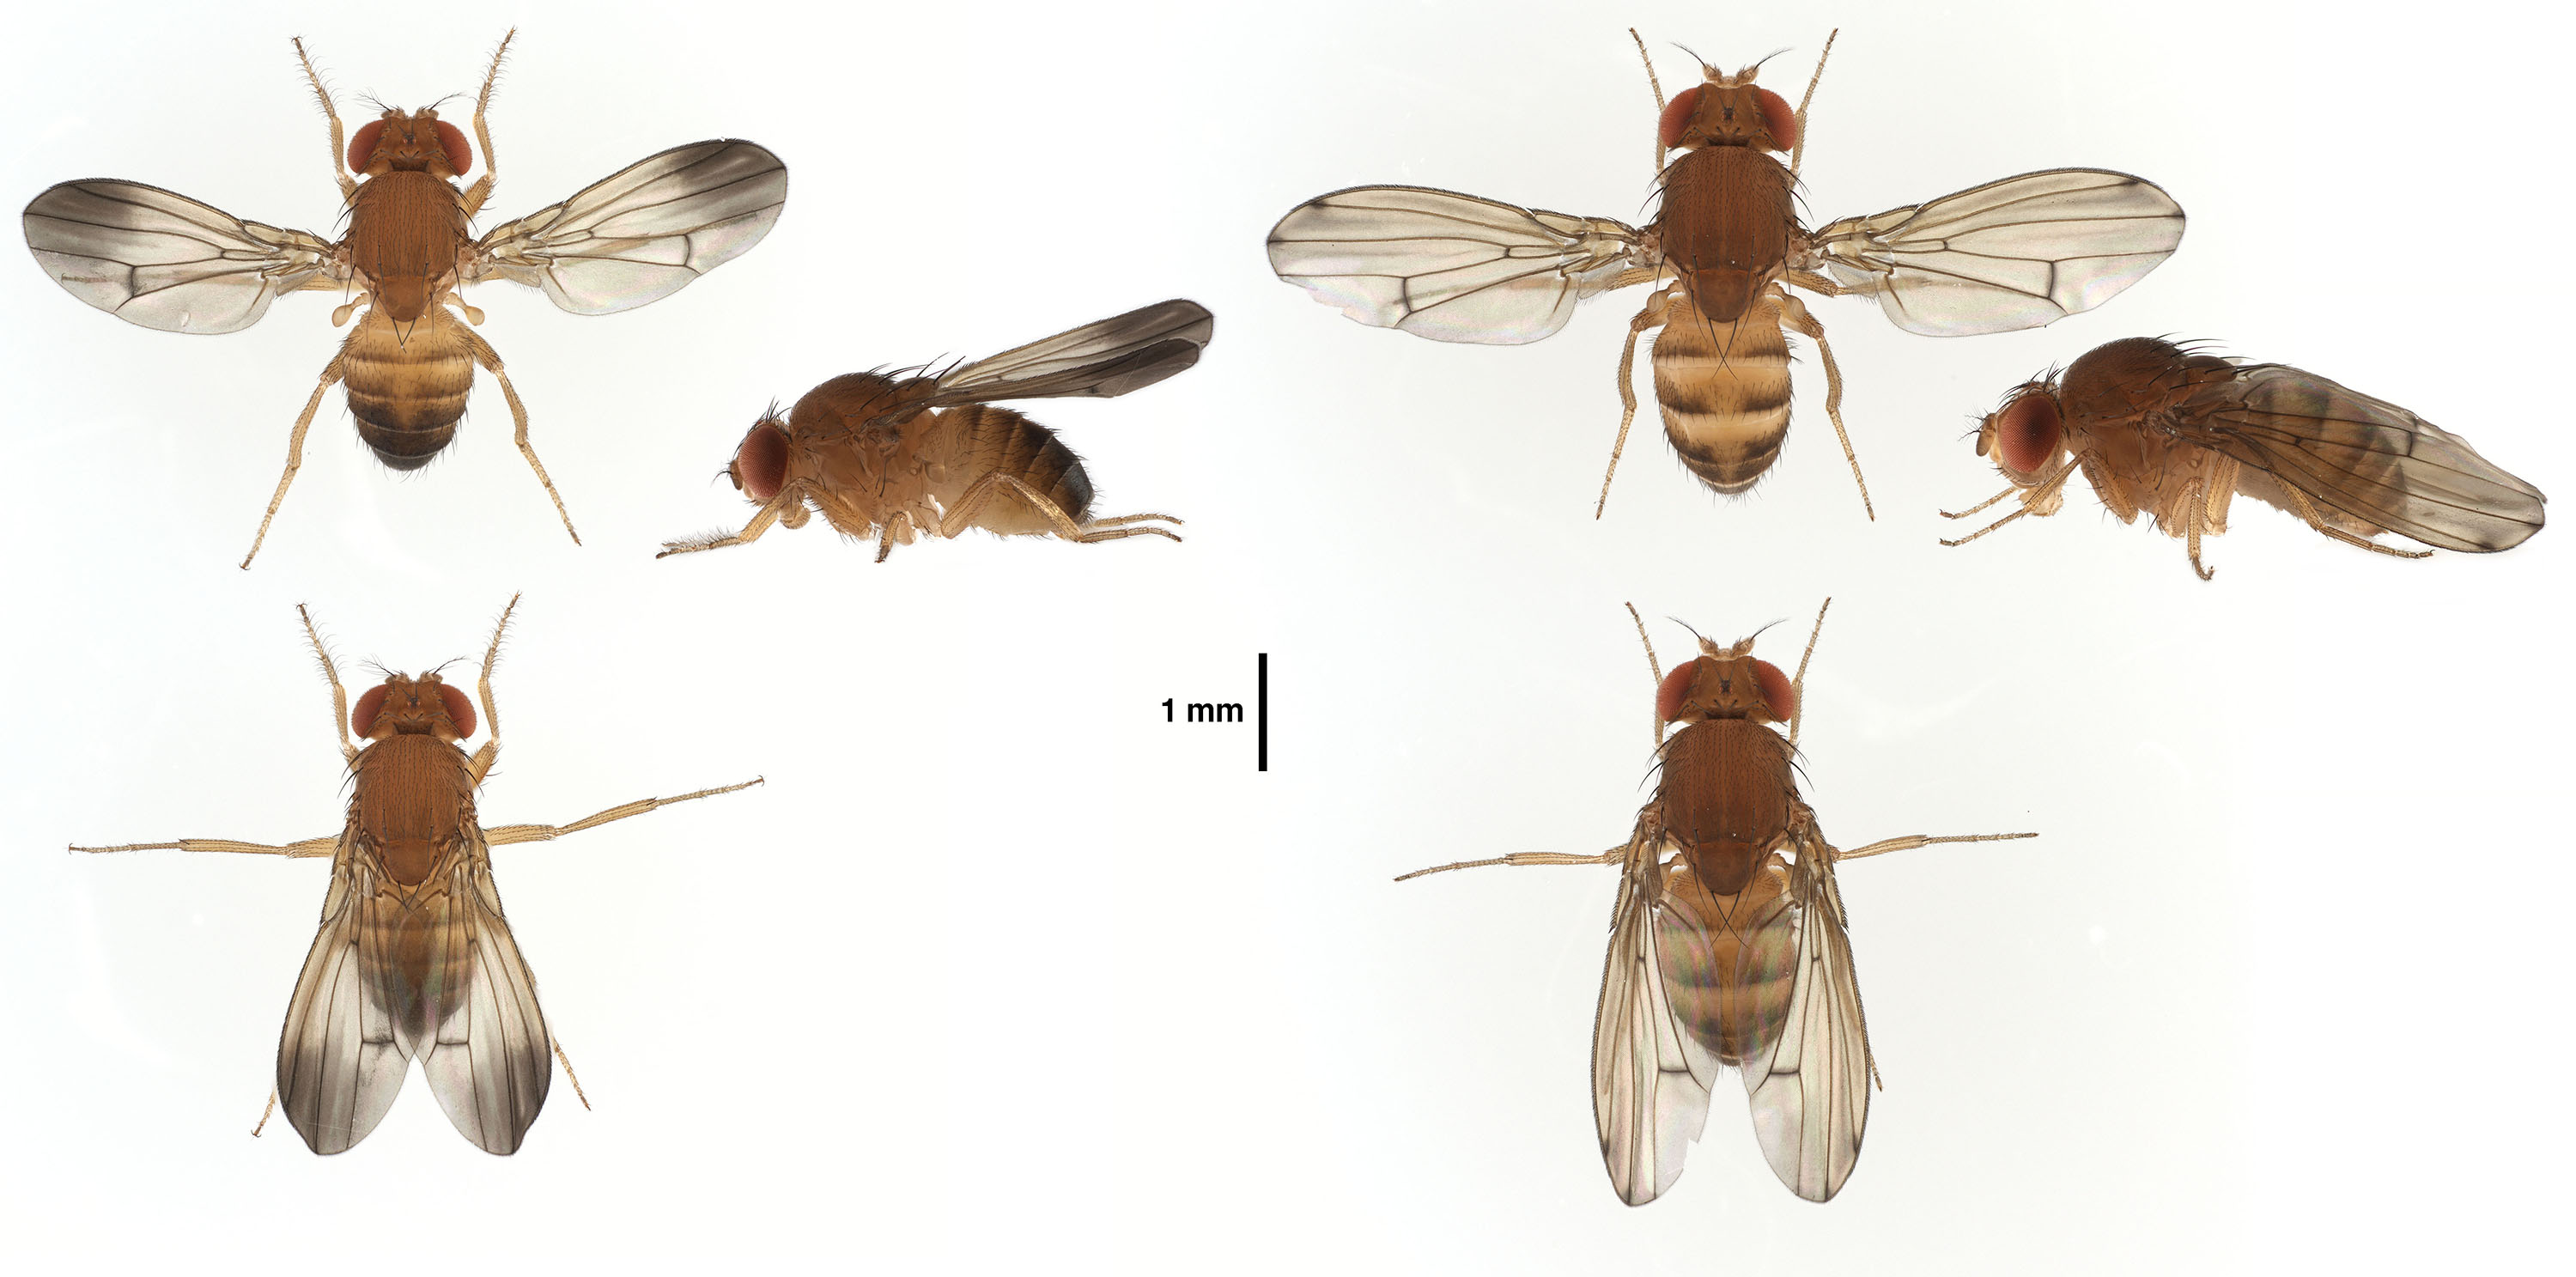 Drosophila ustulata